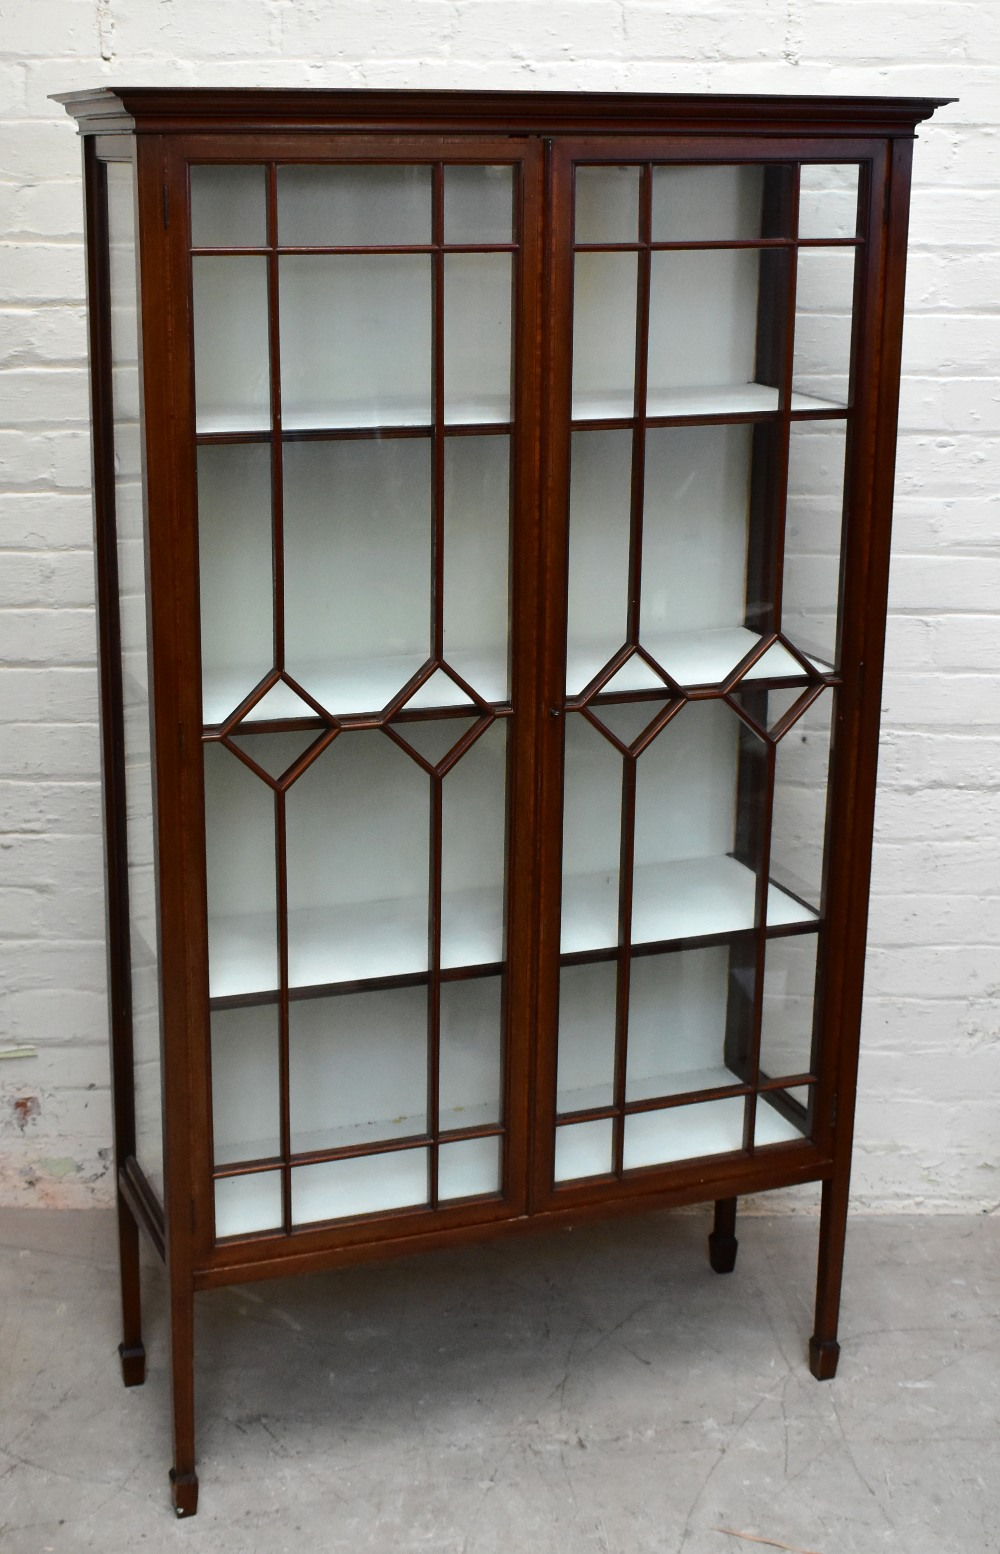 AnEdwardian inlaidmahogany display cabinet, with two astragal glazed doors enclosing glass